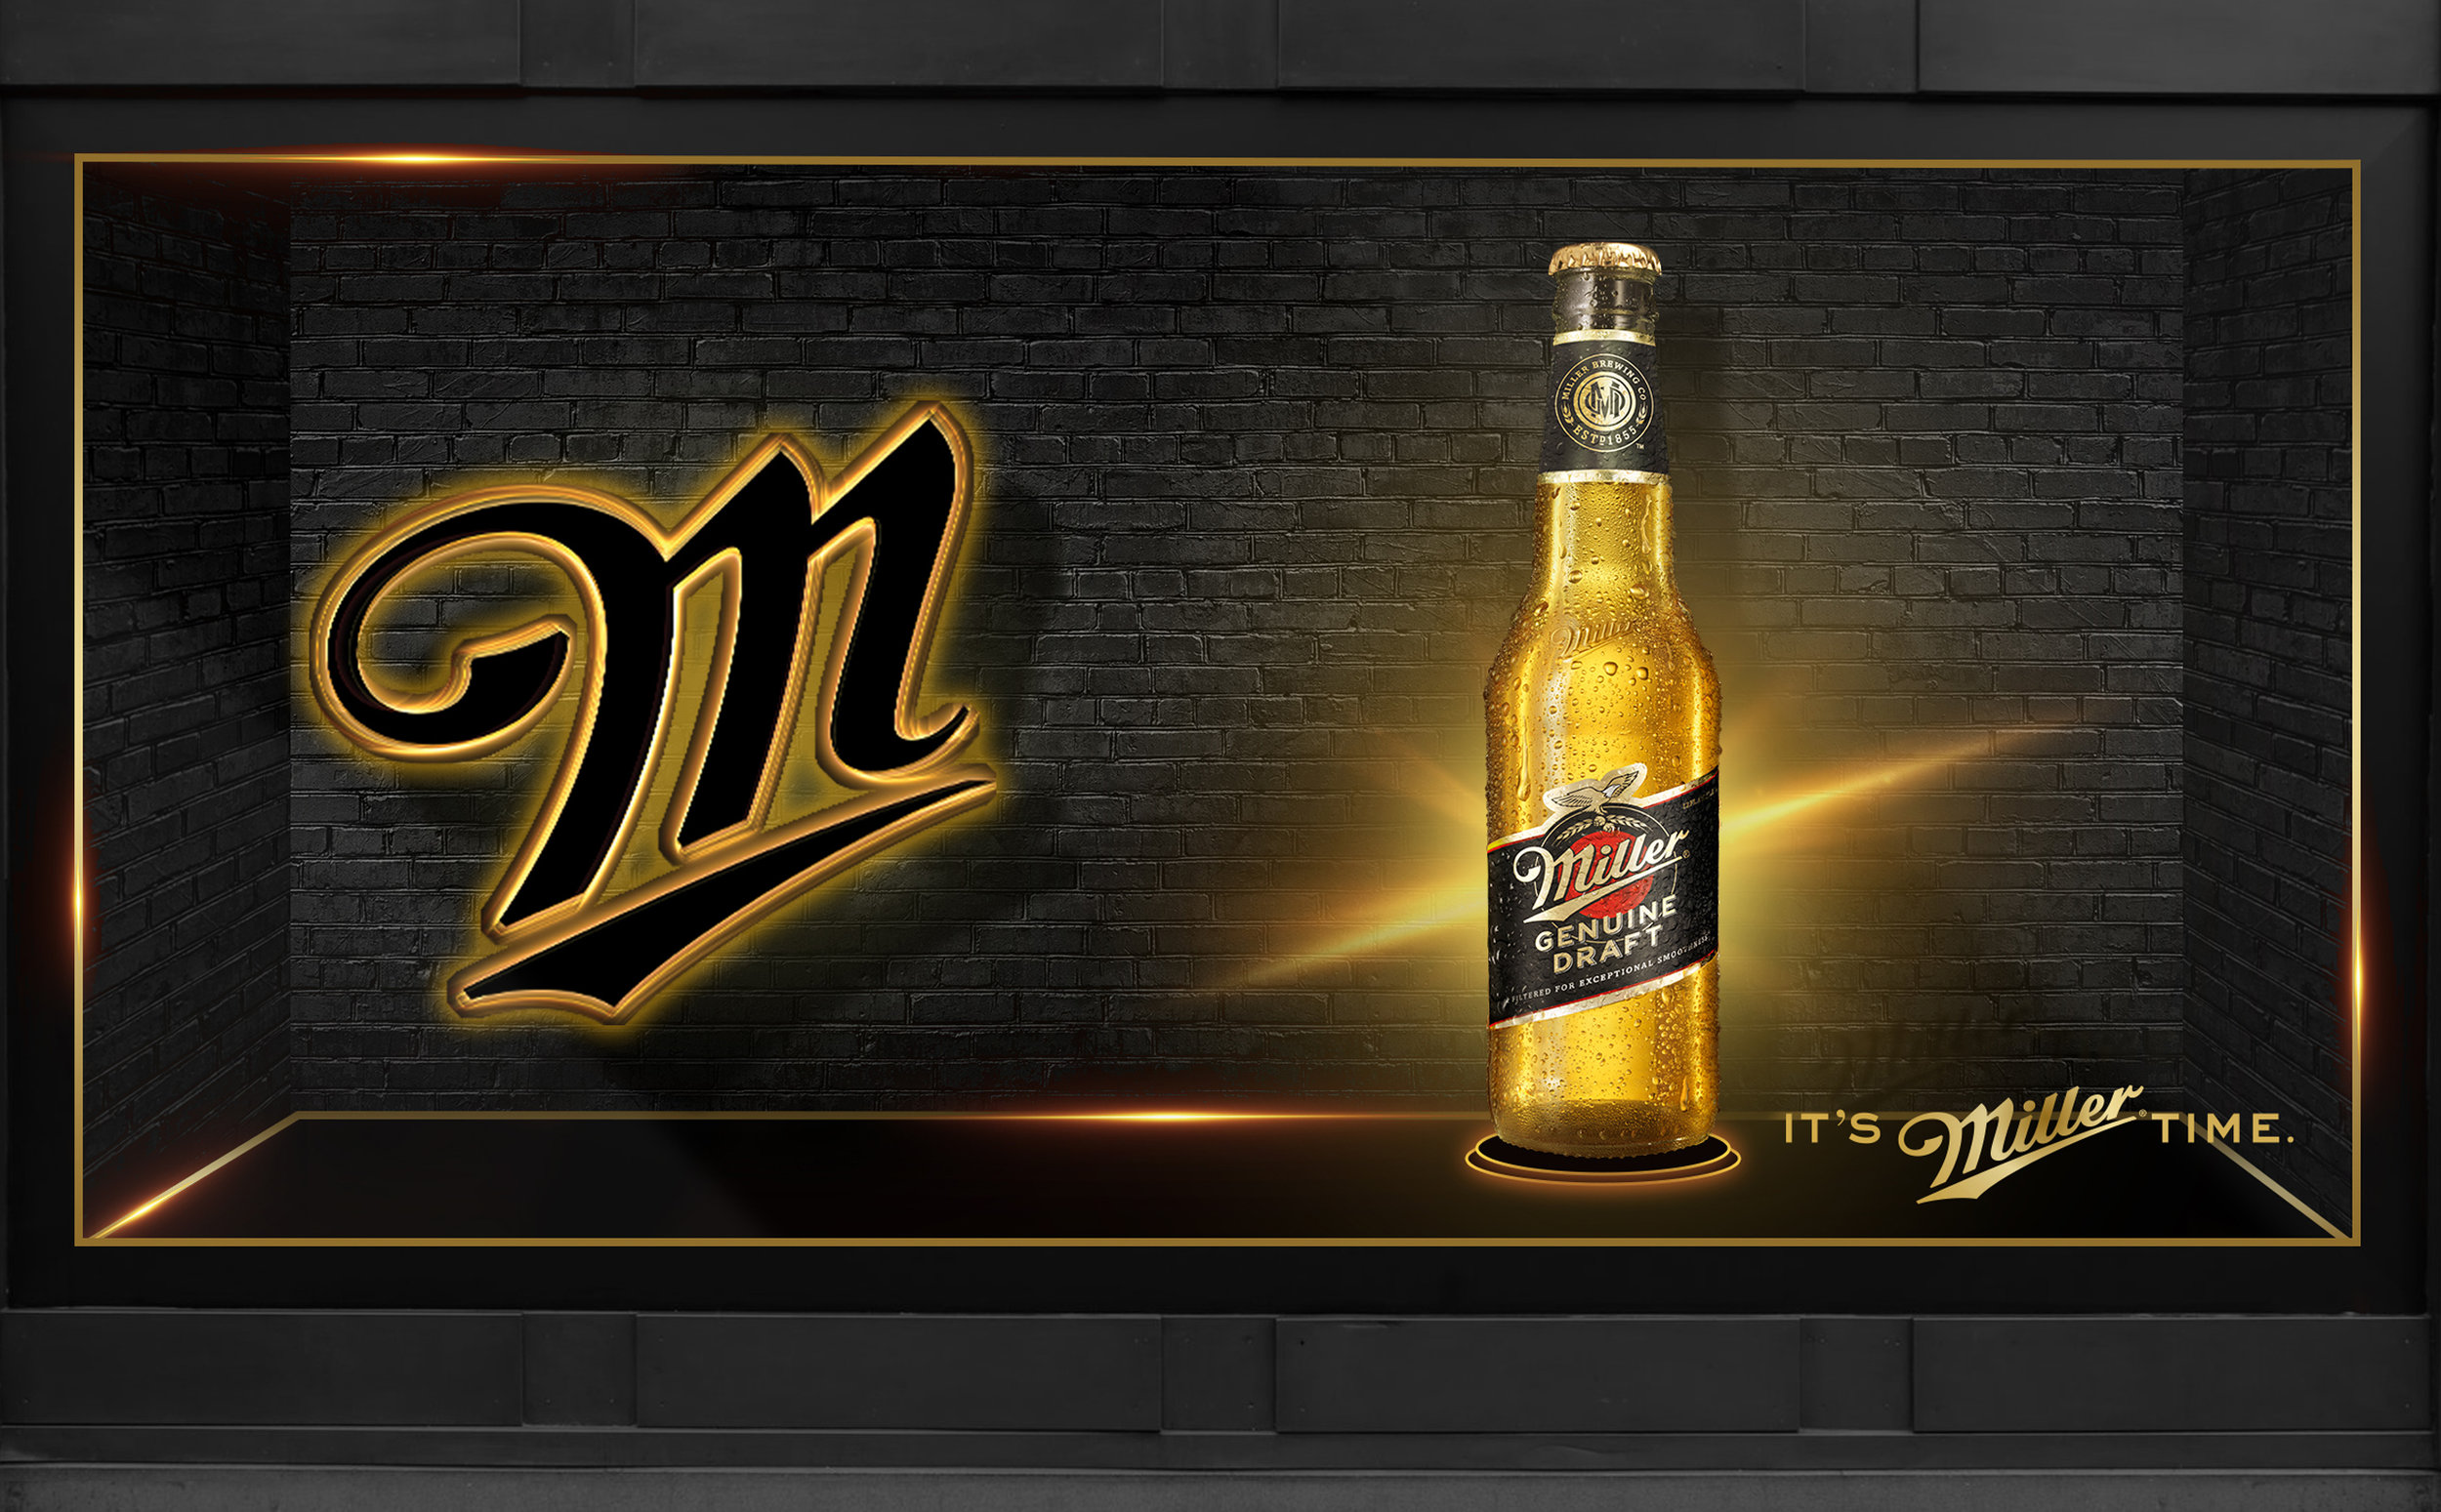 MGD_WINDOW_TAKEOVER_S6_v1 copy.jpg